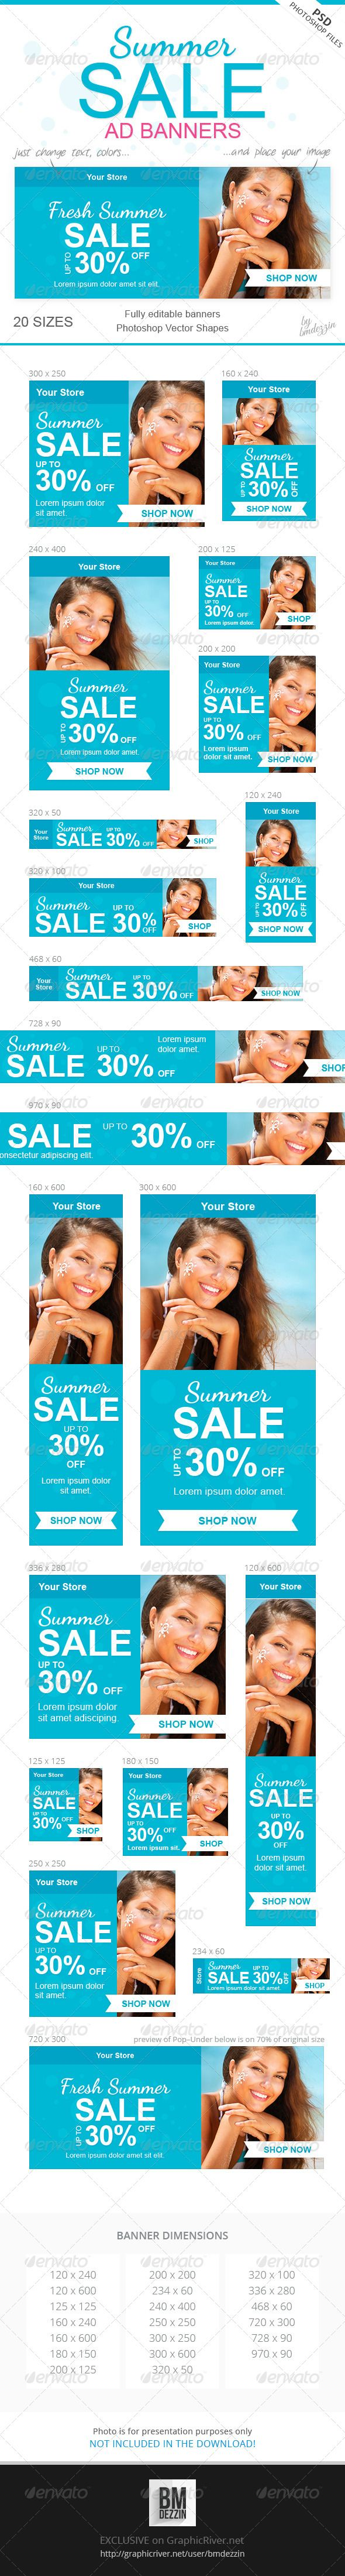 Summer Sale Ad Banners